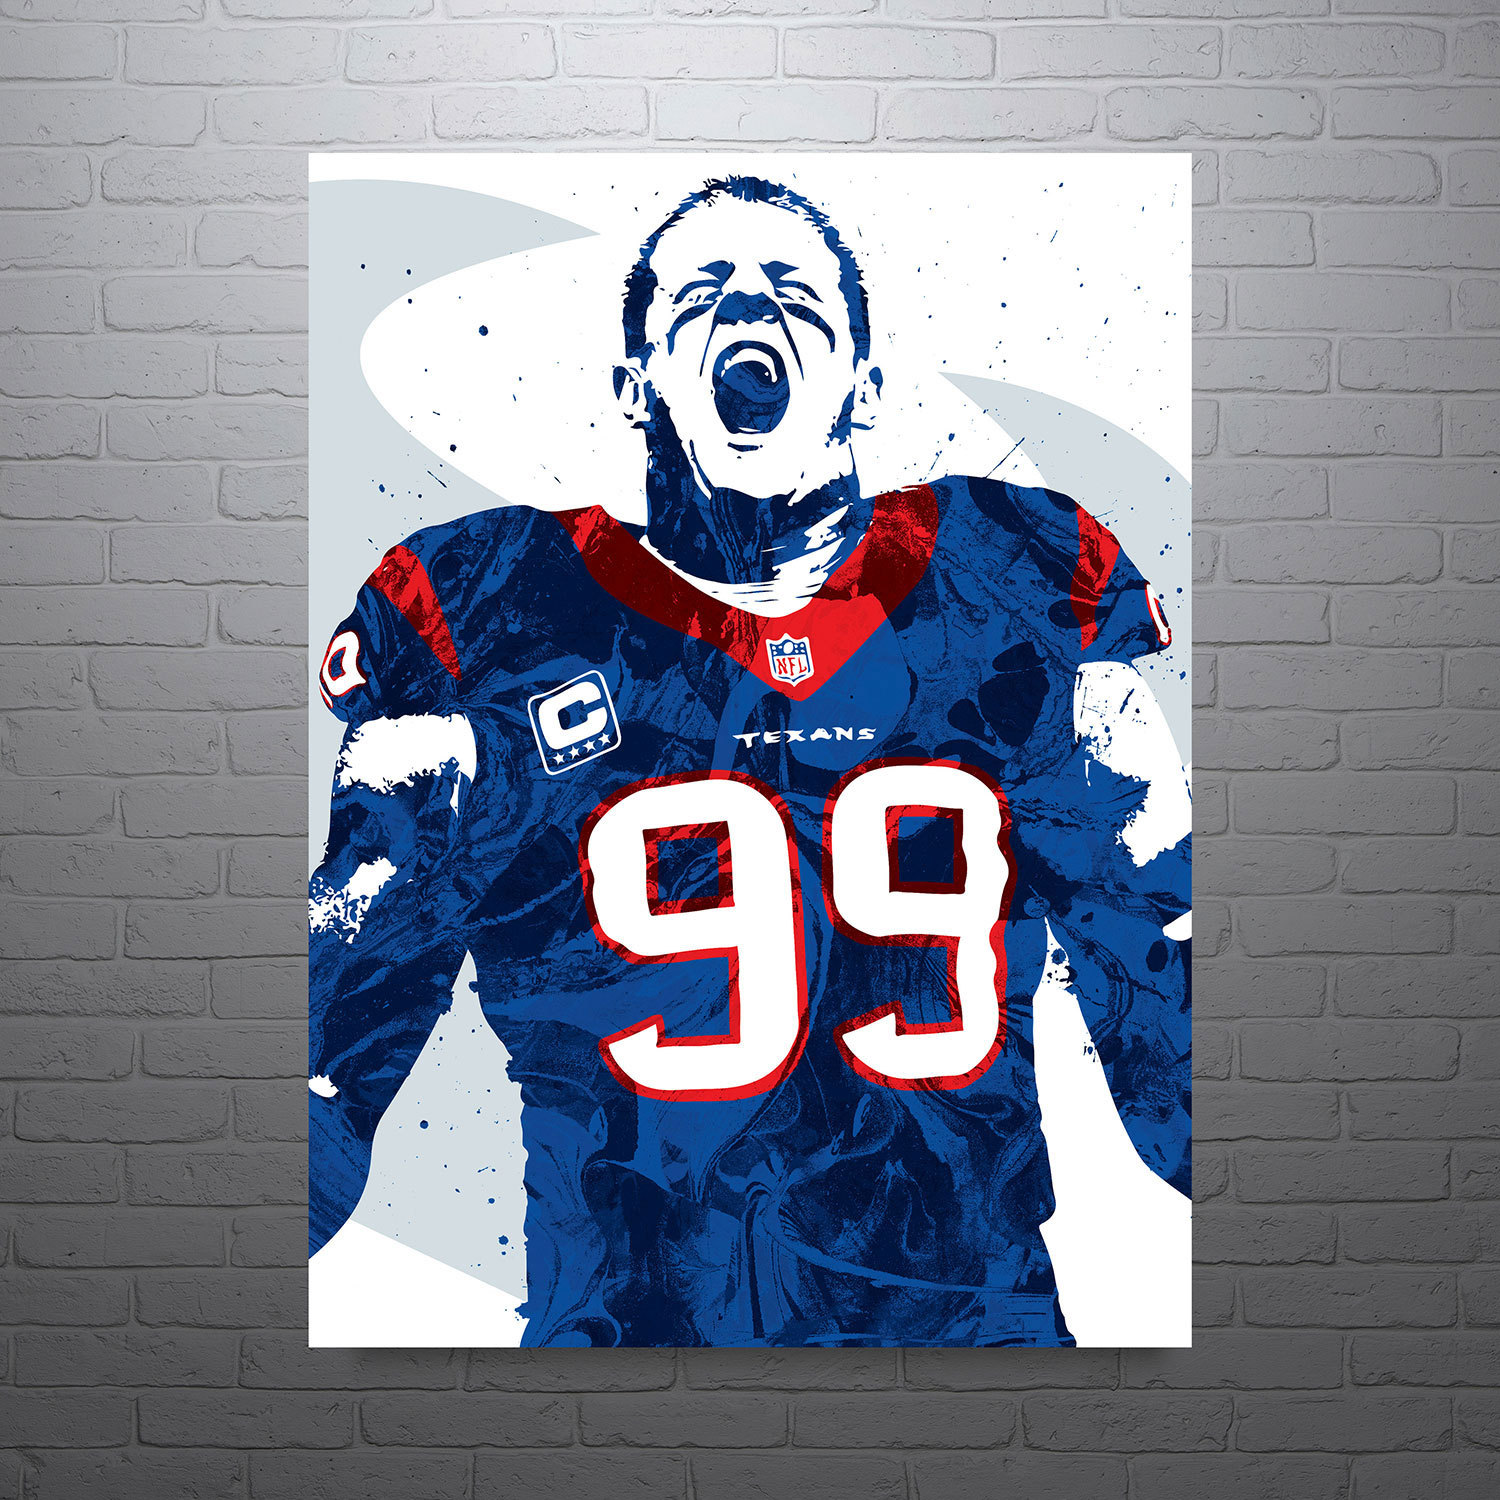 Jj Watt Houston Texans Poster, Houston Texans Free Clipart.